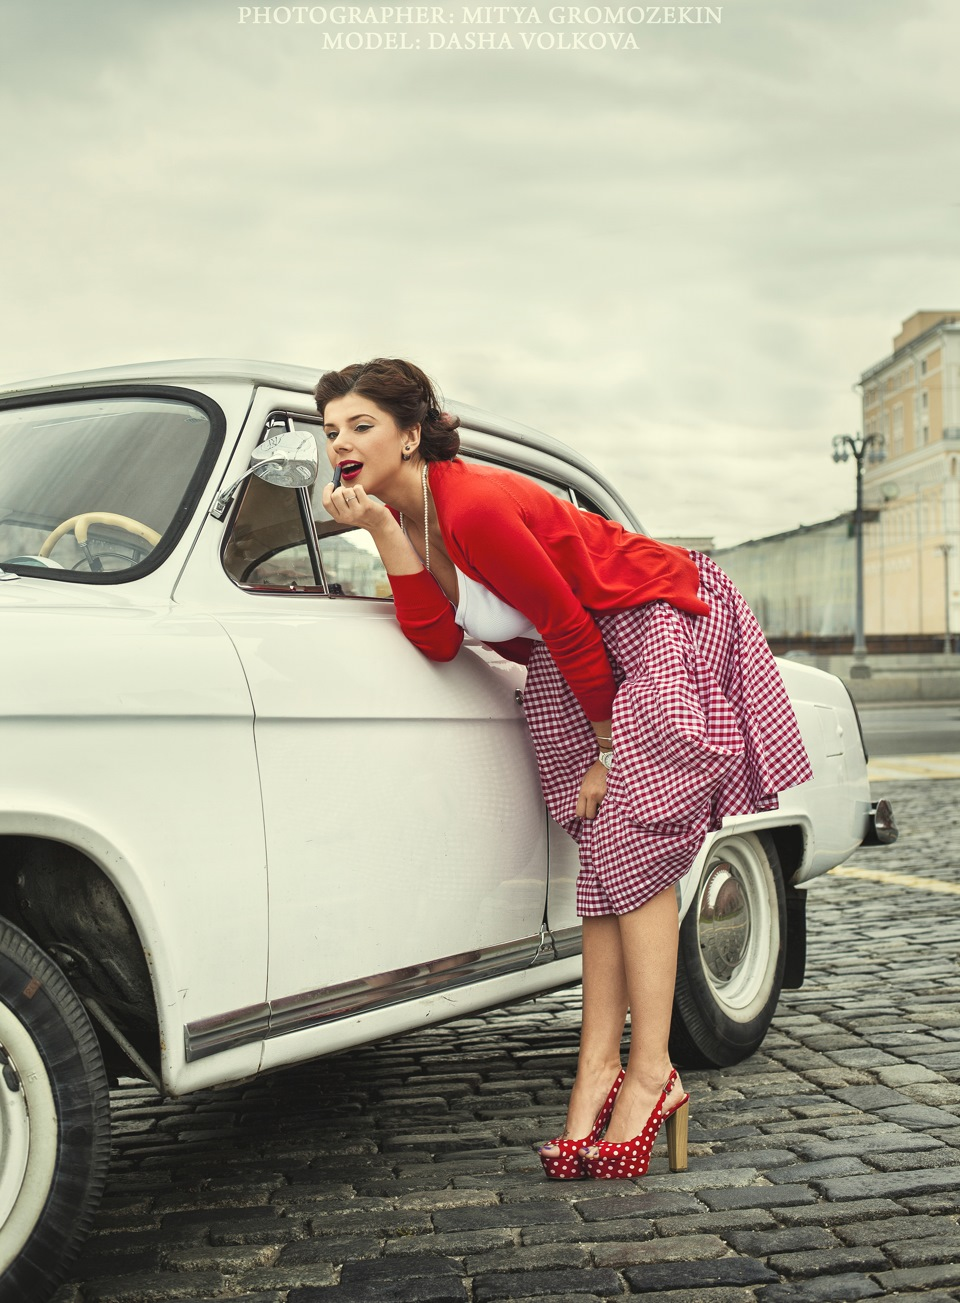 Photo-shoots with Russian beauties and Soviet cars - 24